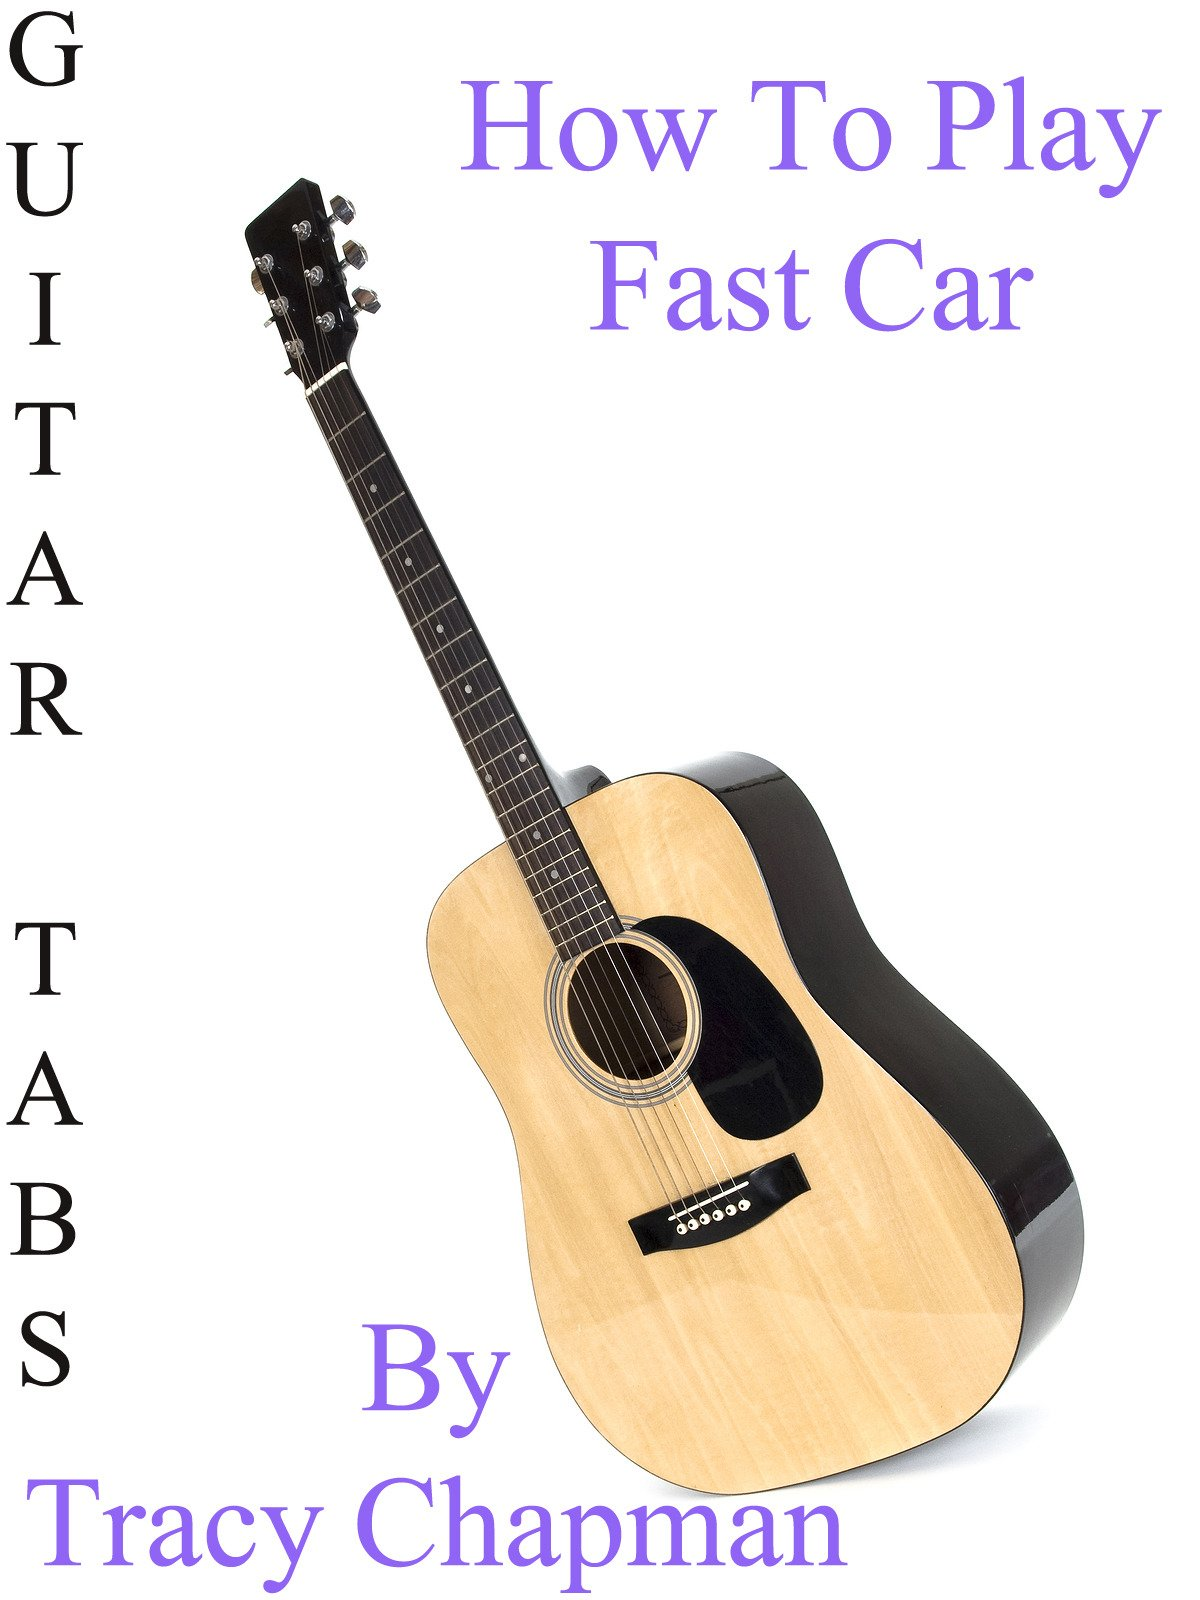 Amazoncom How To Play Fast Car By Tracy Chapman Guitar Tabs - Tracy chapman fast car guitar